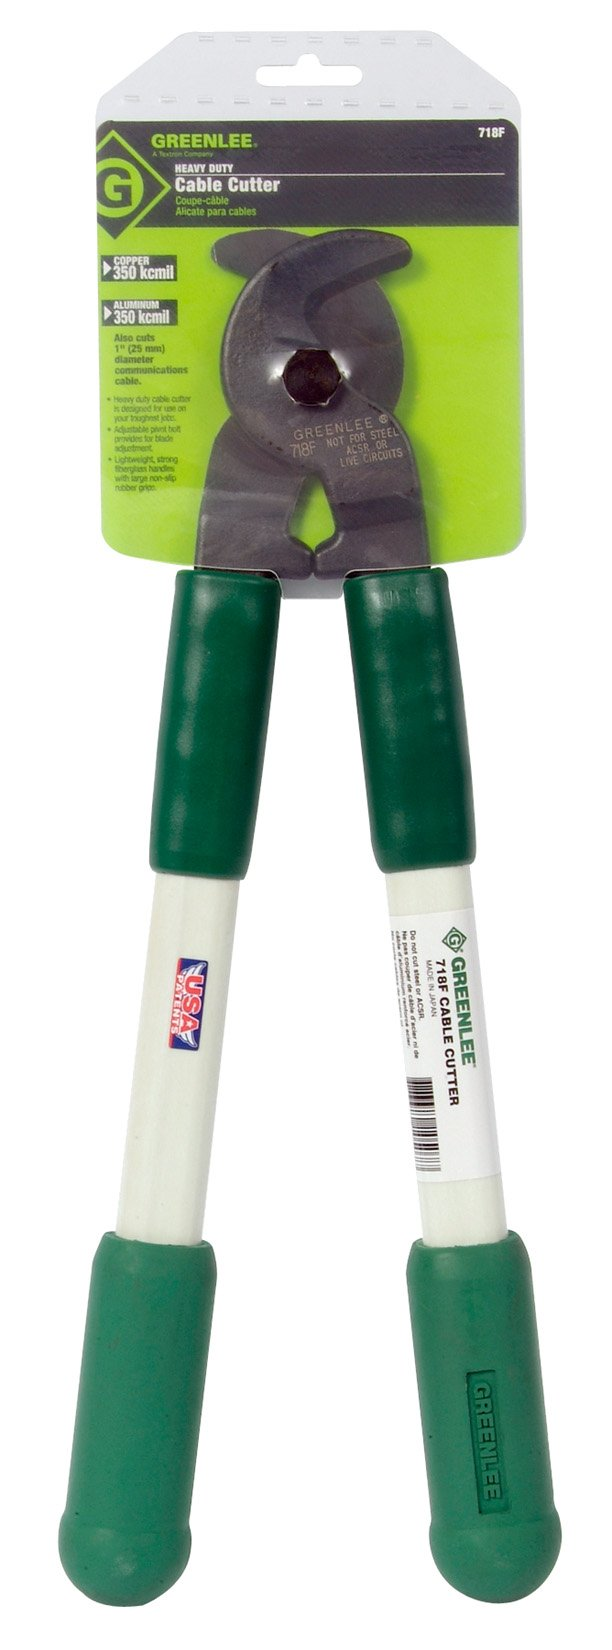 Greenlee 718F Cable Cutter, 17-1/2''